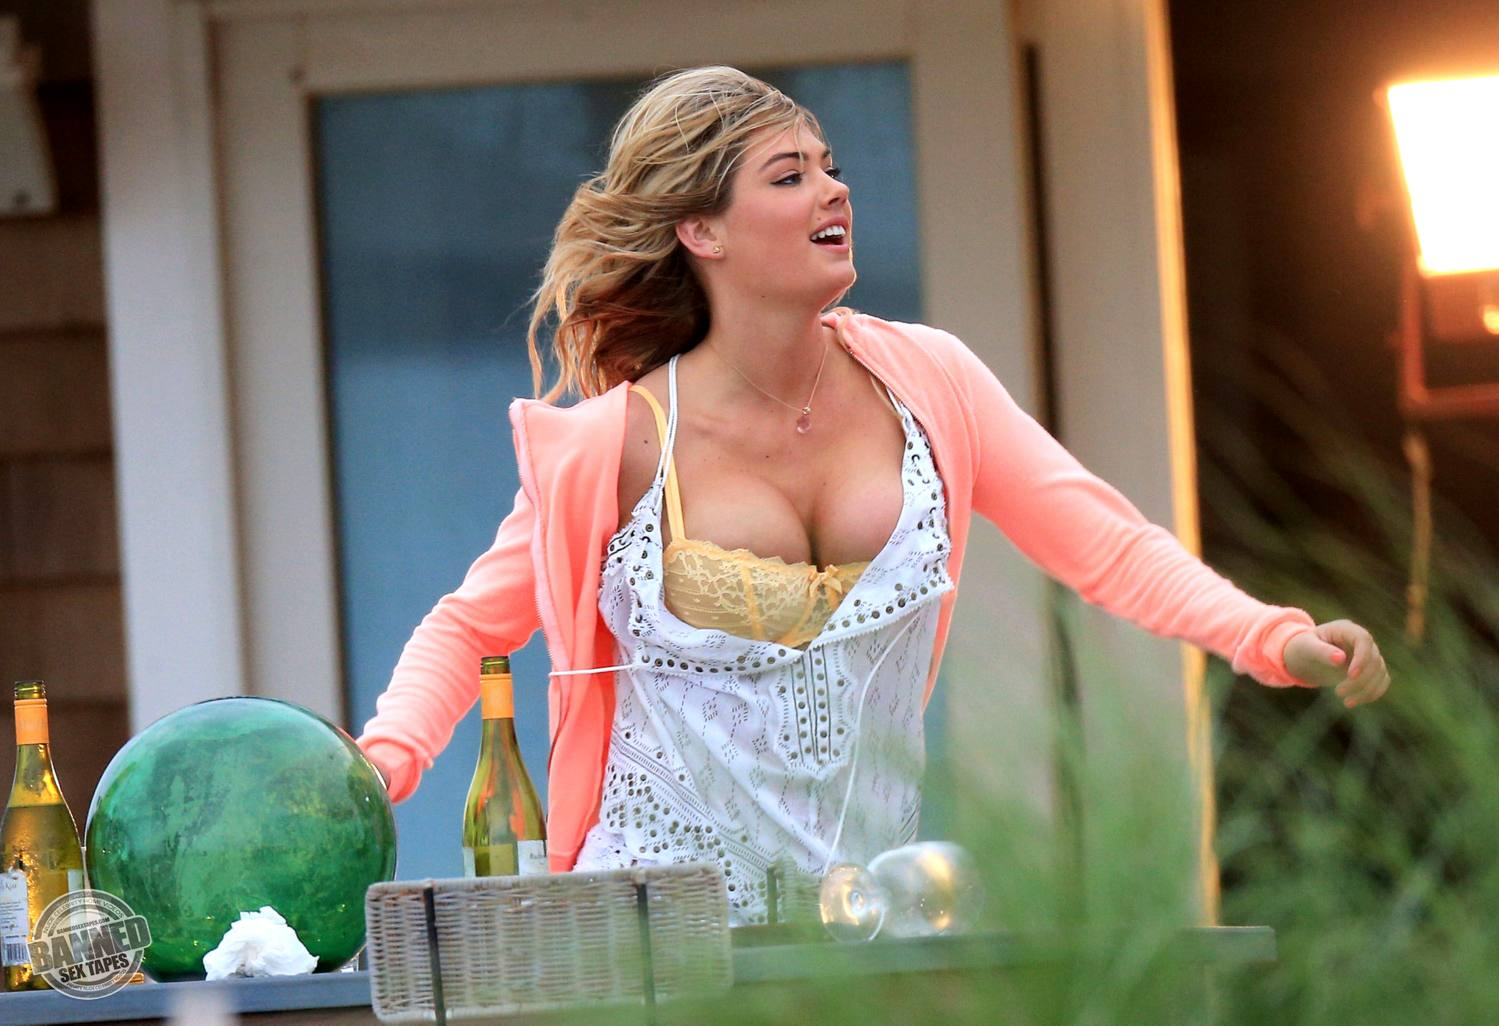 Kate upton fully naked at largest celebrities archive